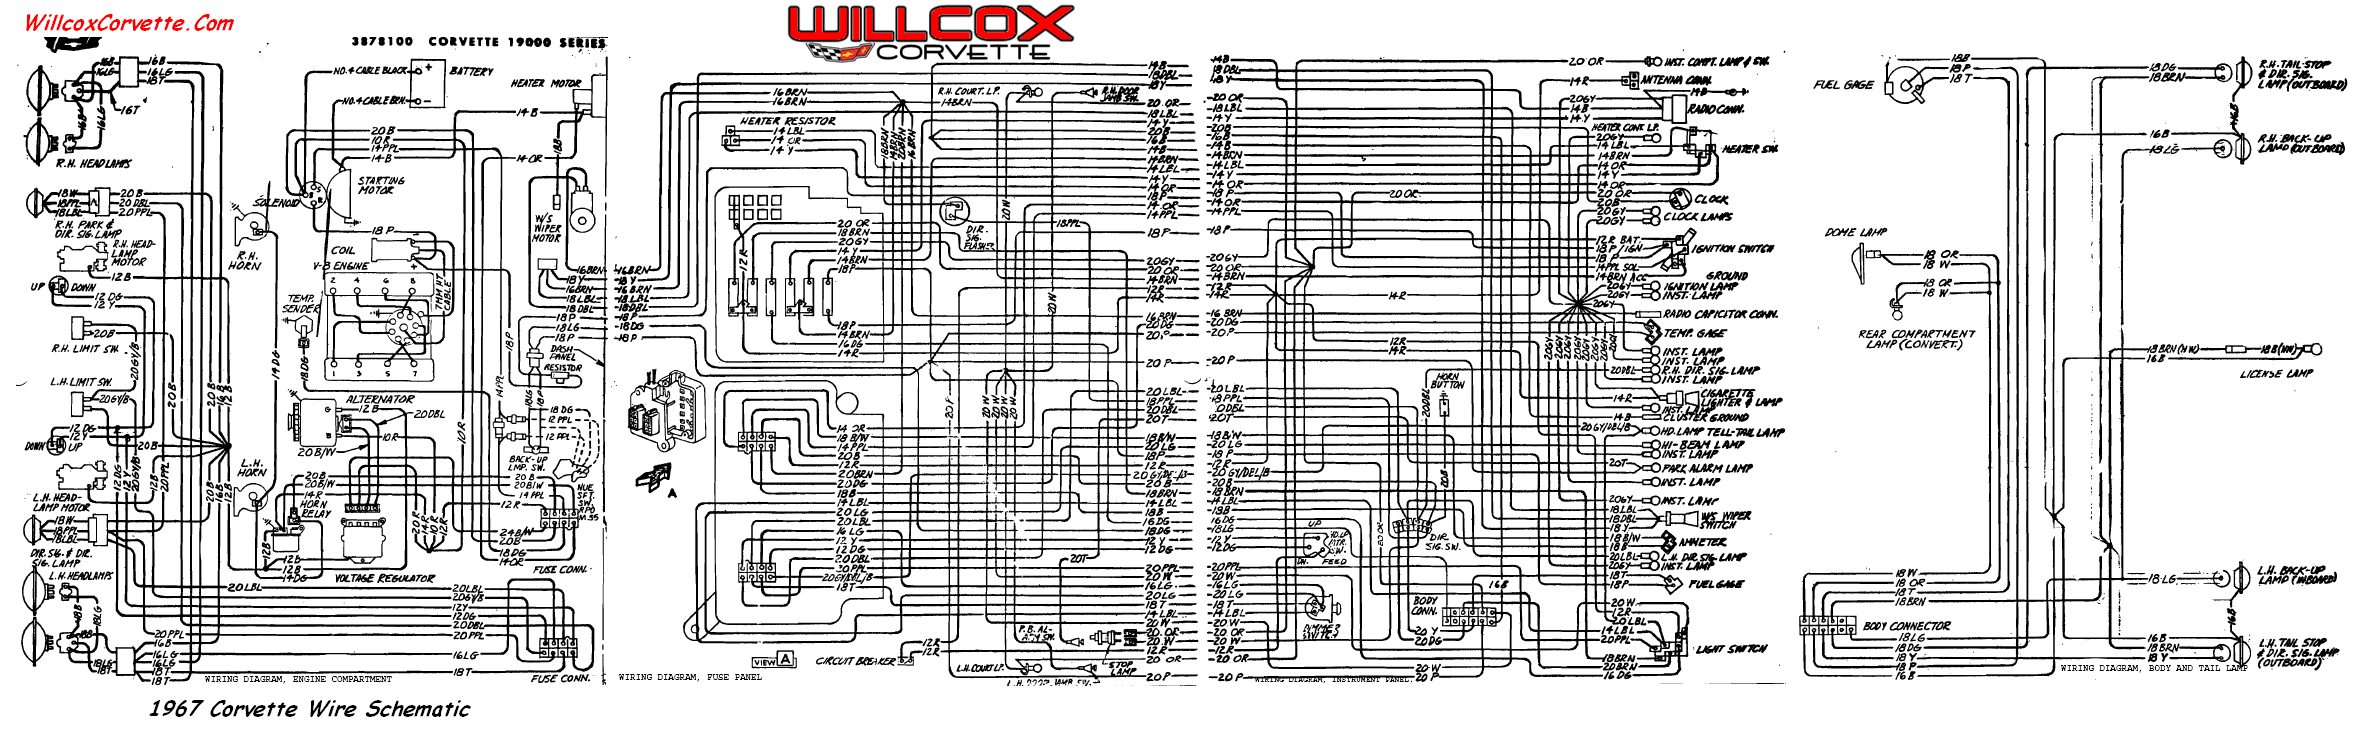 1966 corvette horn wiring diagram data library \u2022 chevy truck wiring diagram 1980 corvette horn wiring diagram wiring diagram rh komagoma co 1967 corvette starter wiring diagram 1966